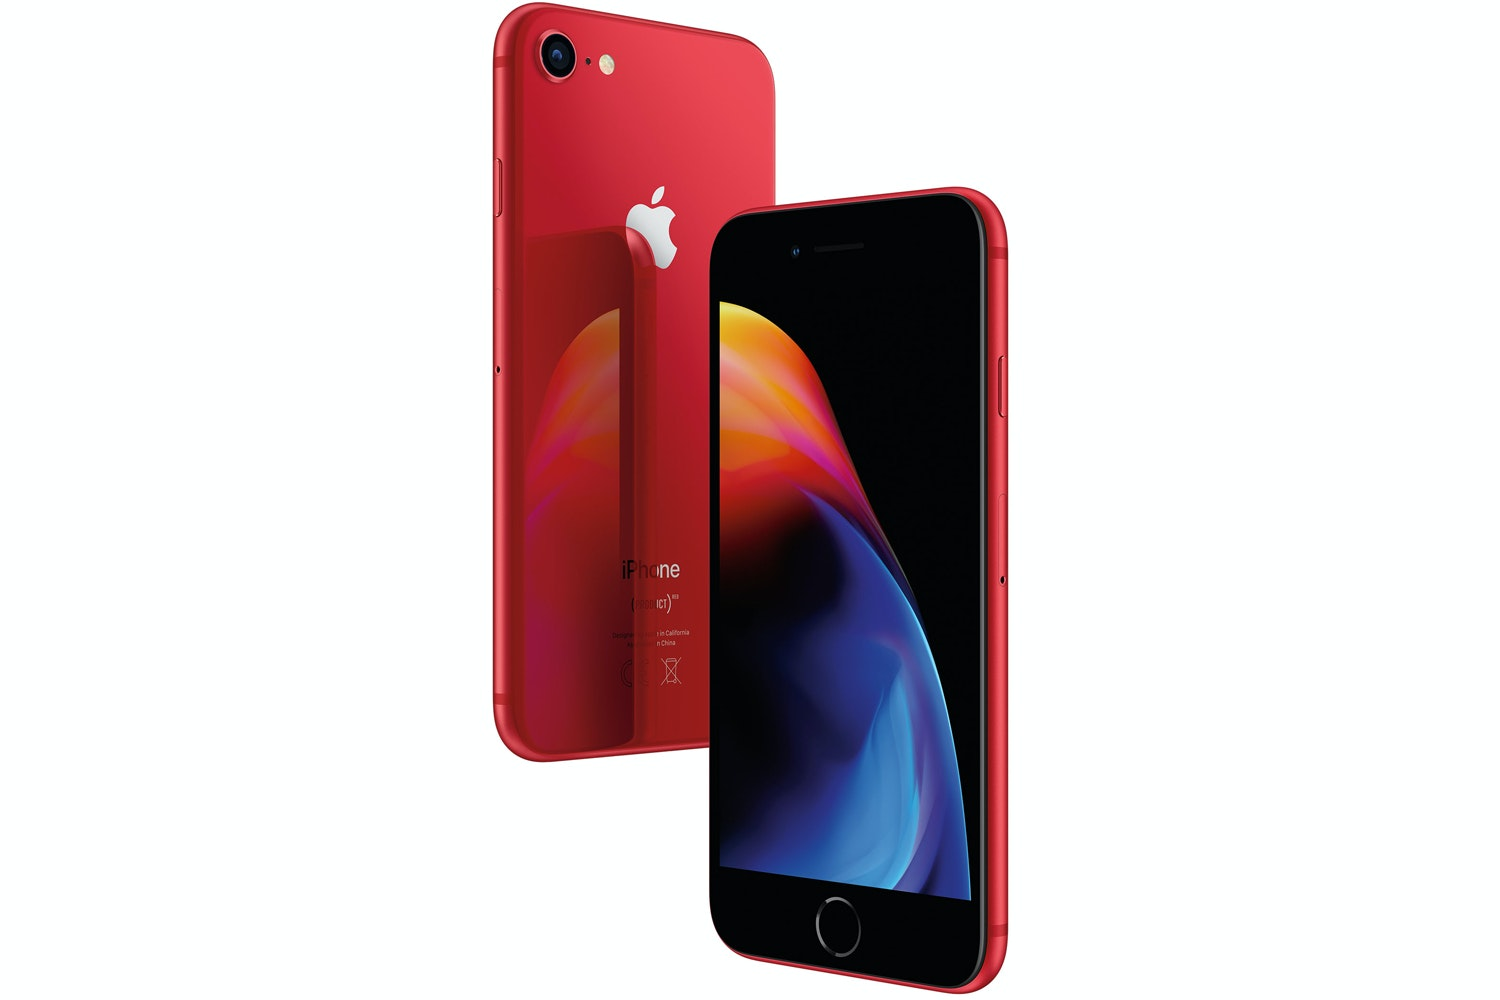 iPhone 8 (PRODUCT)Red Special Edition 64GB